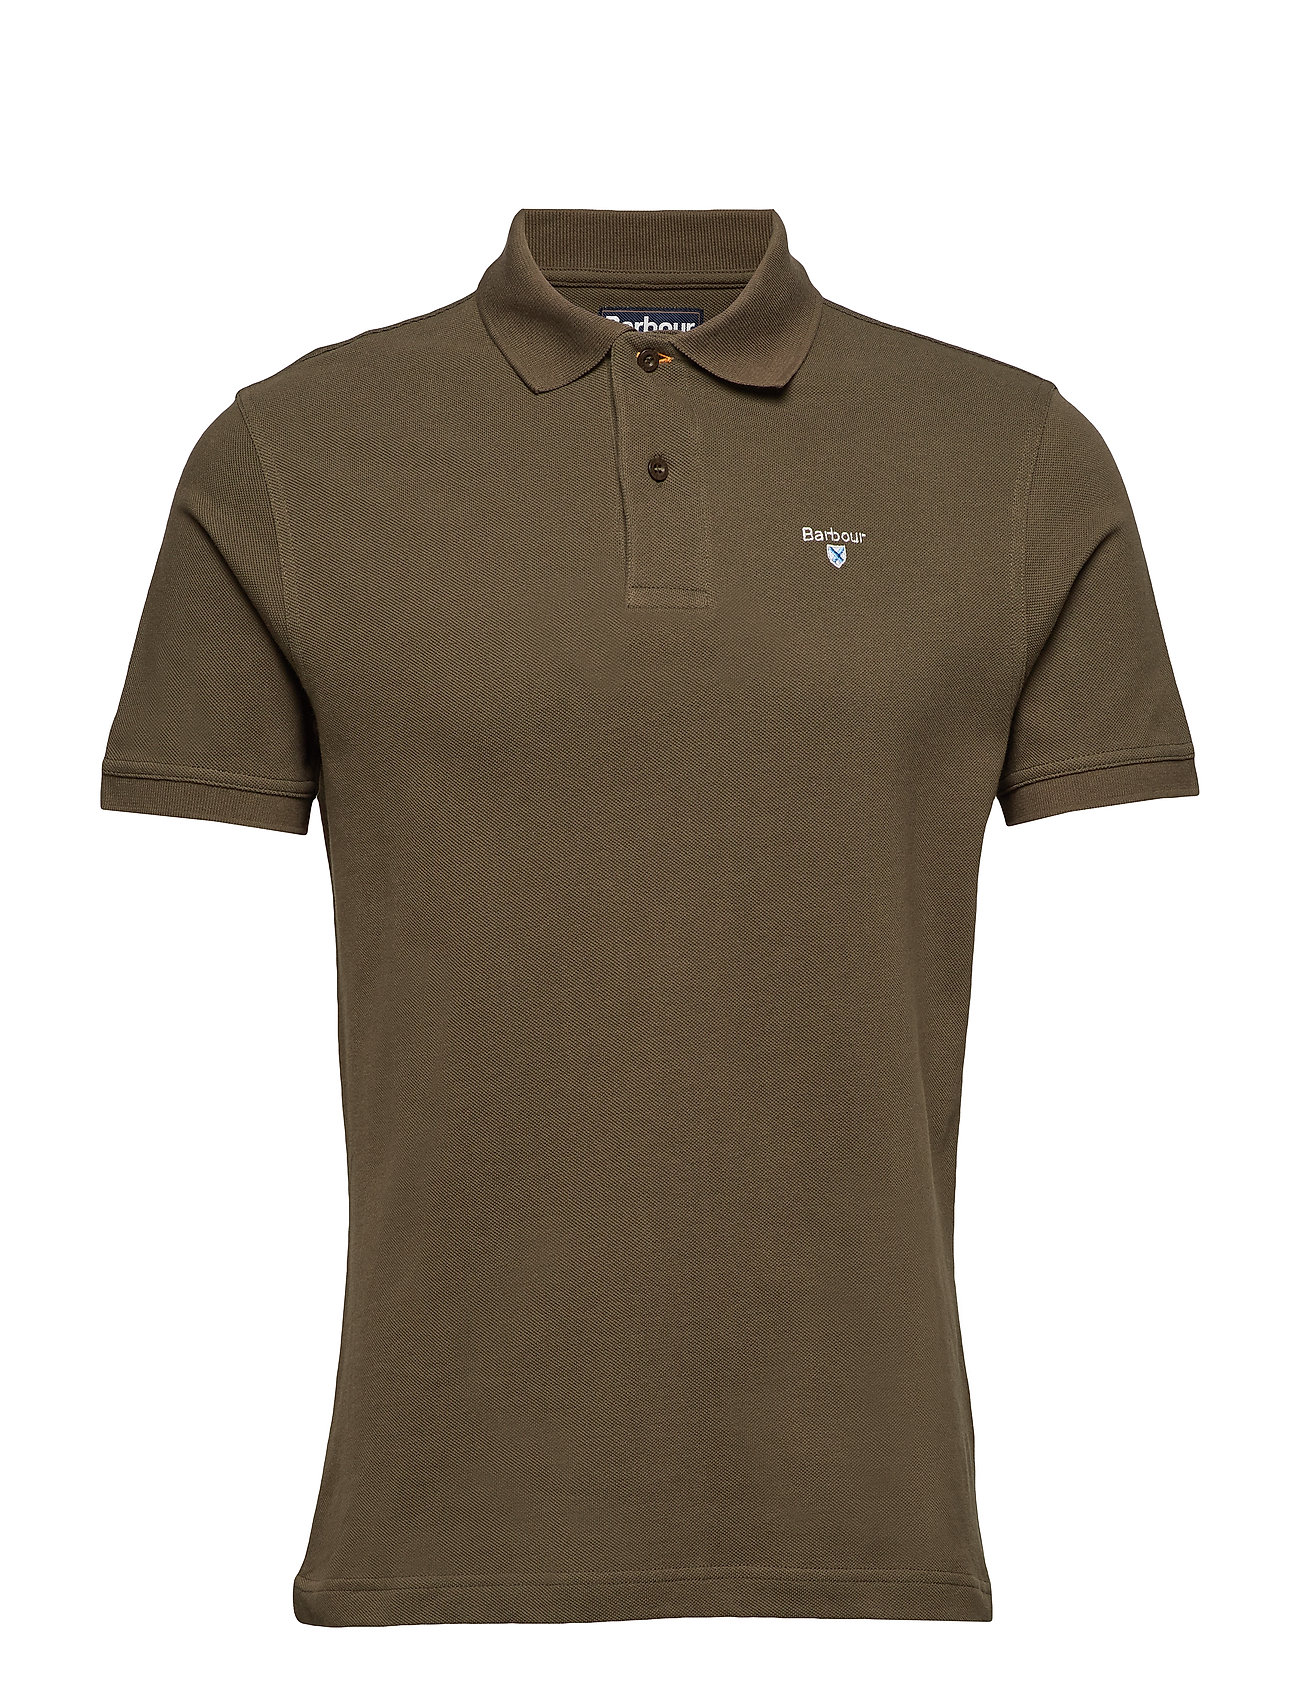 Image of Barbour Sports Polo Polos Short-sleeved Grøn Barbour (3334482283)